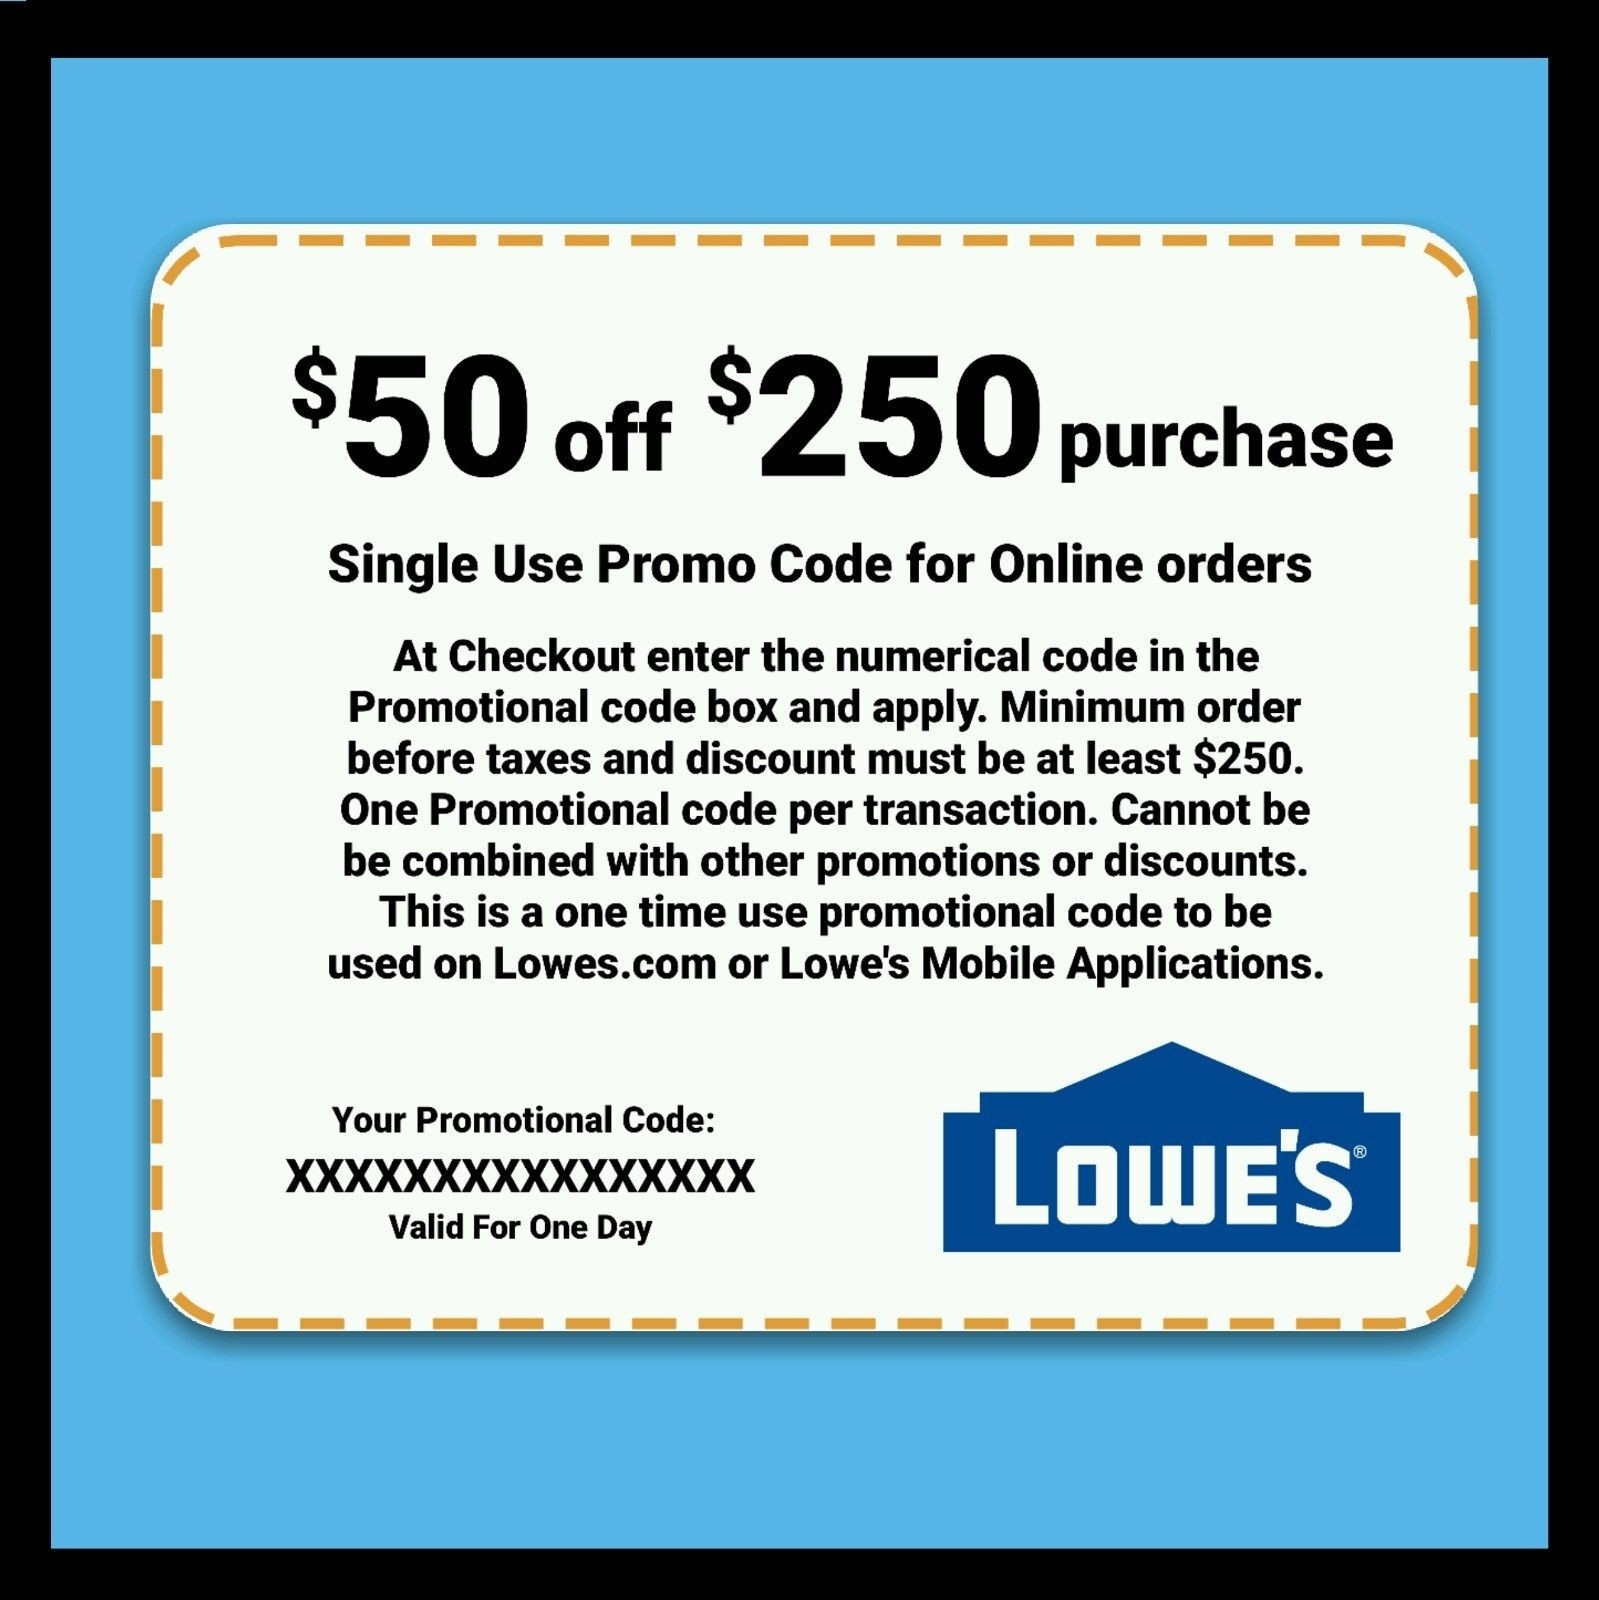 Lowes 20 Printable Coupon (86+ Images In Collection) Page 1 - Lowes 20 Printable Coupon Free